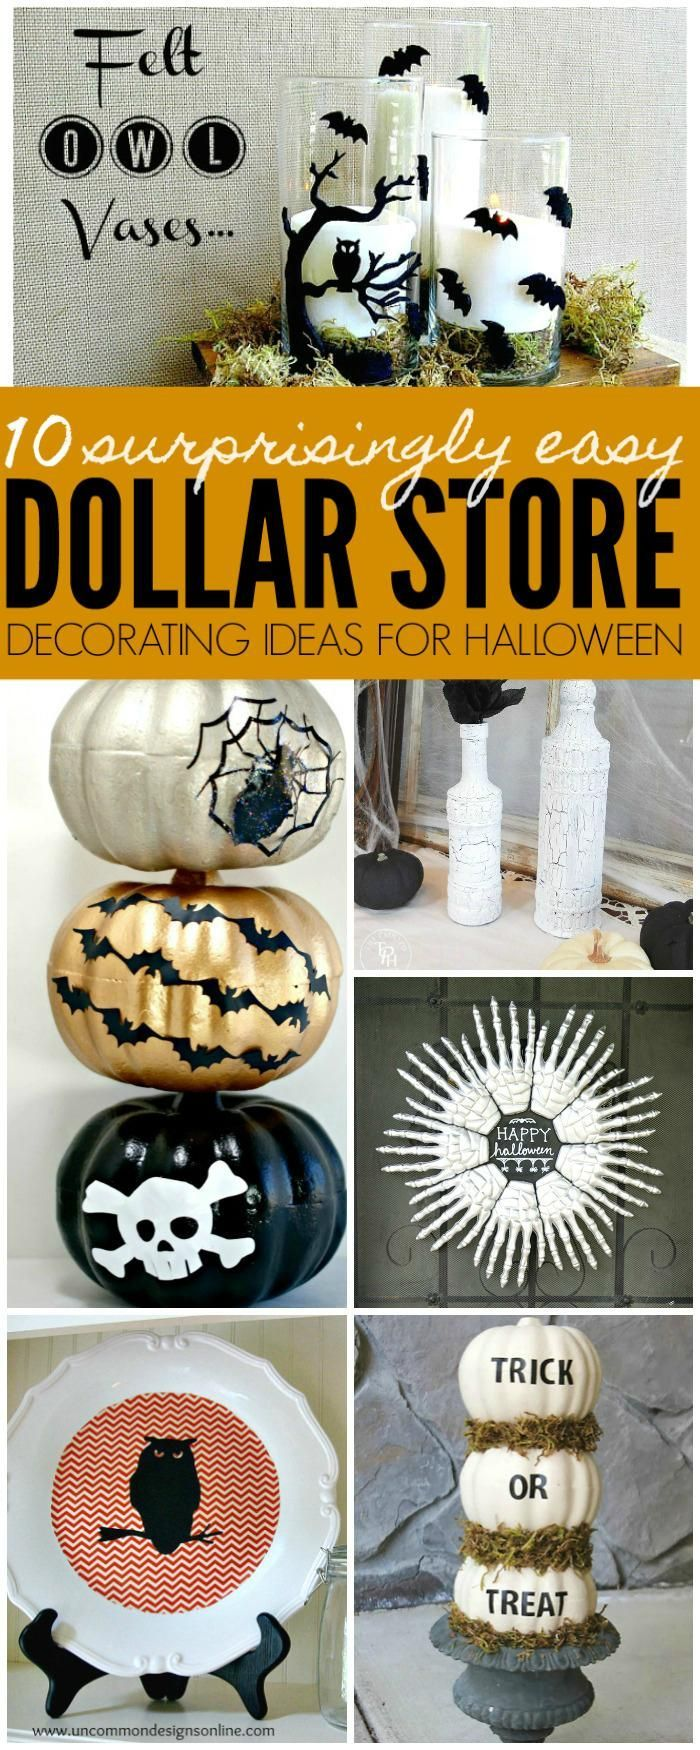 Dollar Store Halloween Decorating Ideas help save you money this Halloween by creating Halloween Decorations out of Dollar Store Halloween Items.